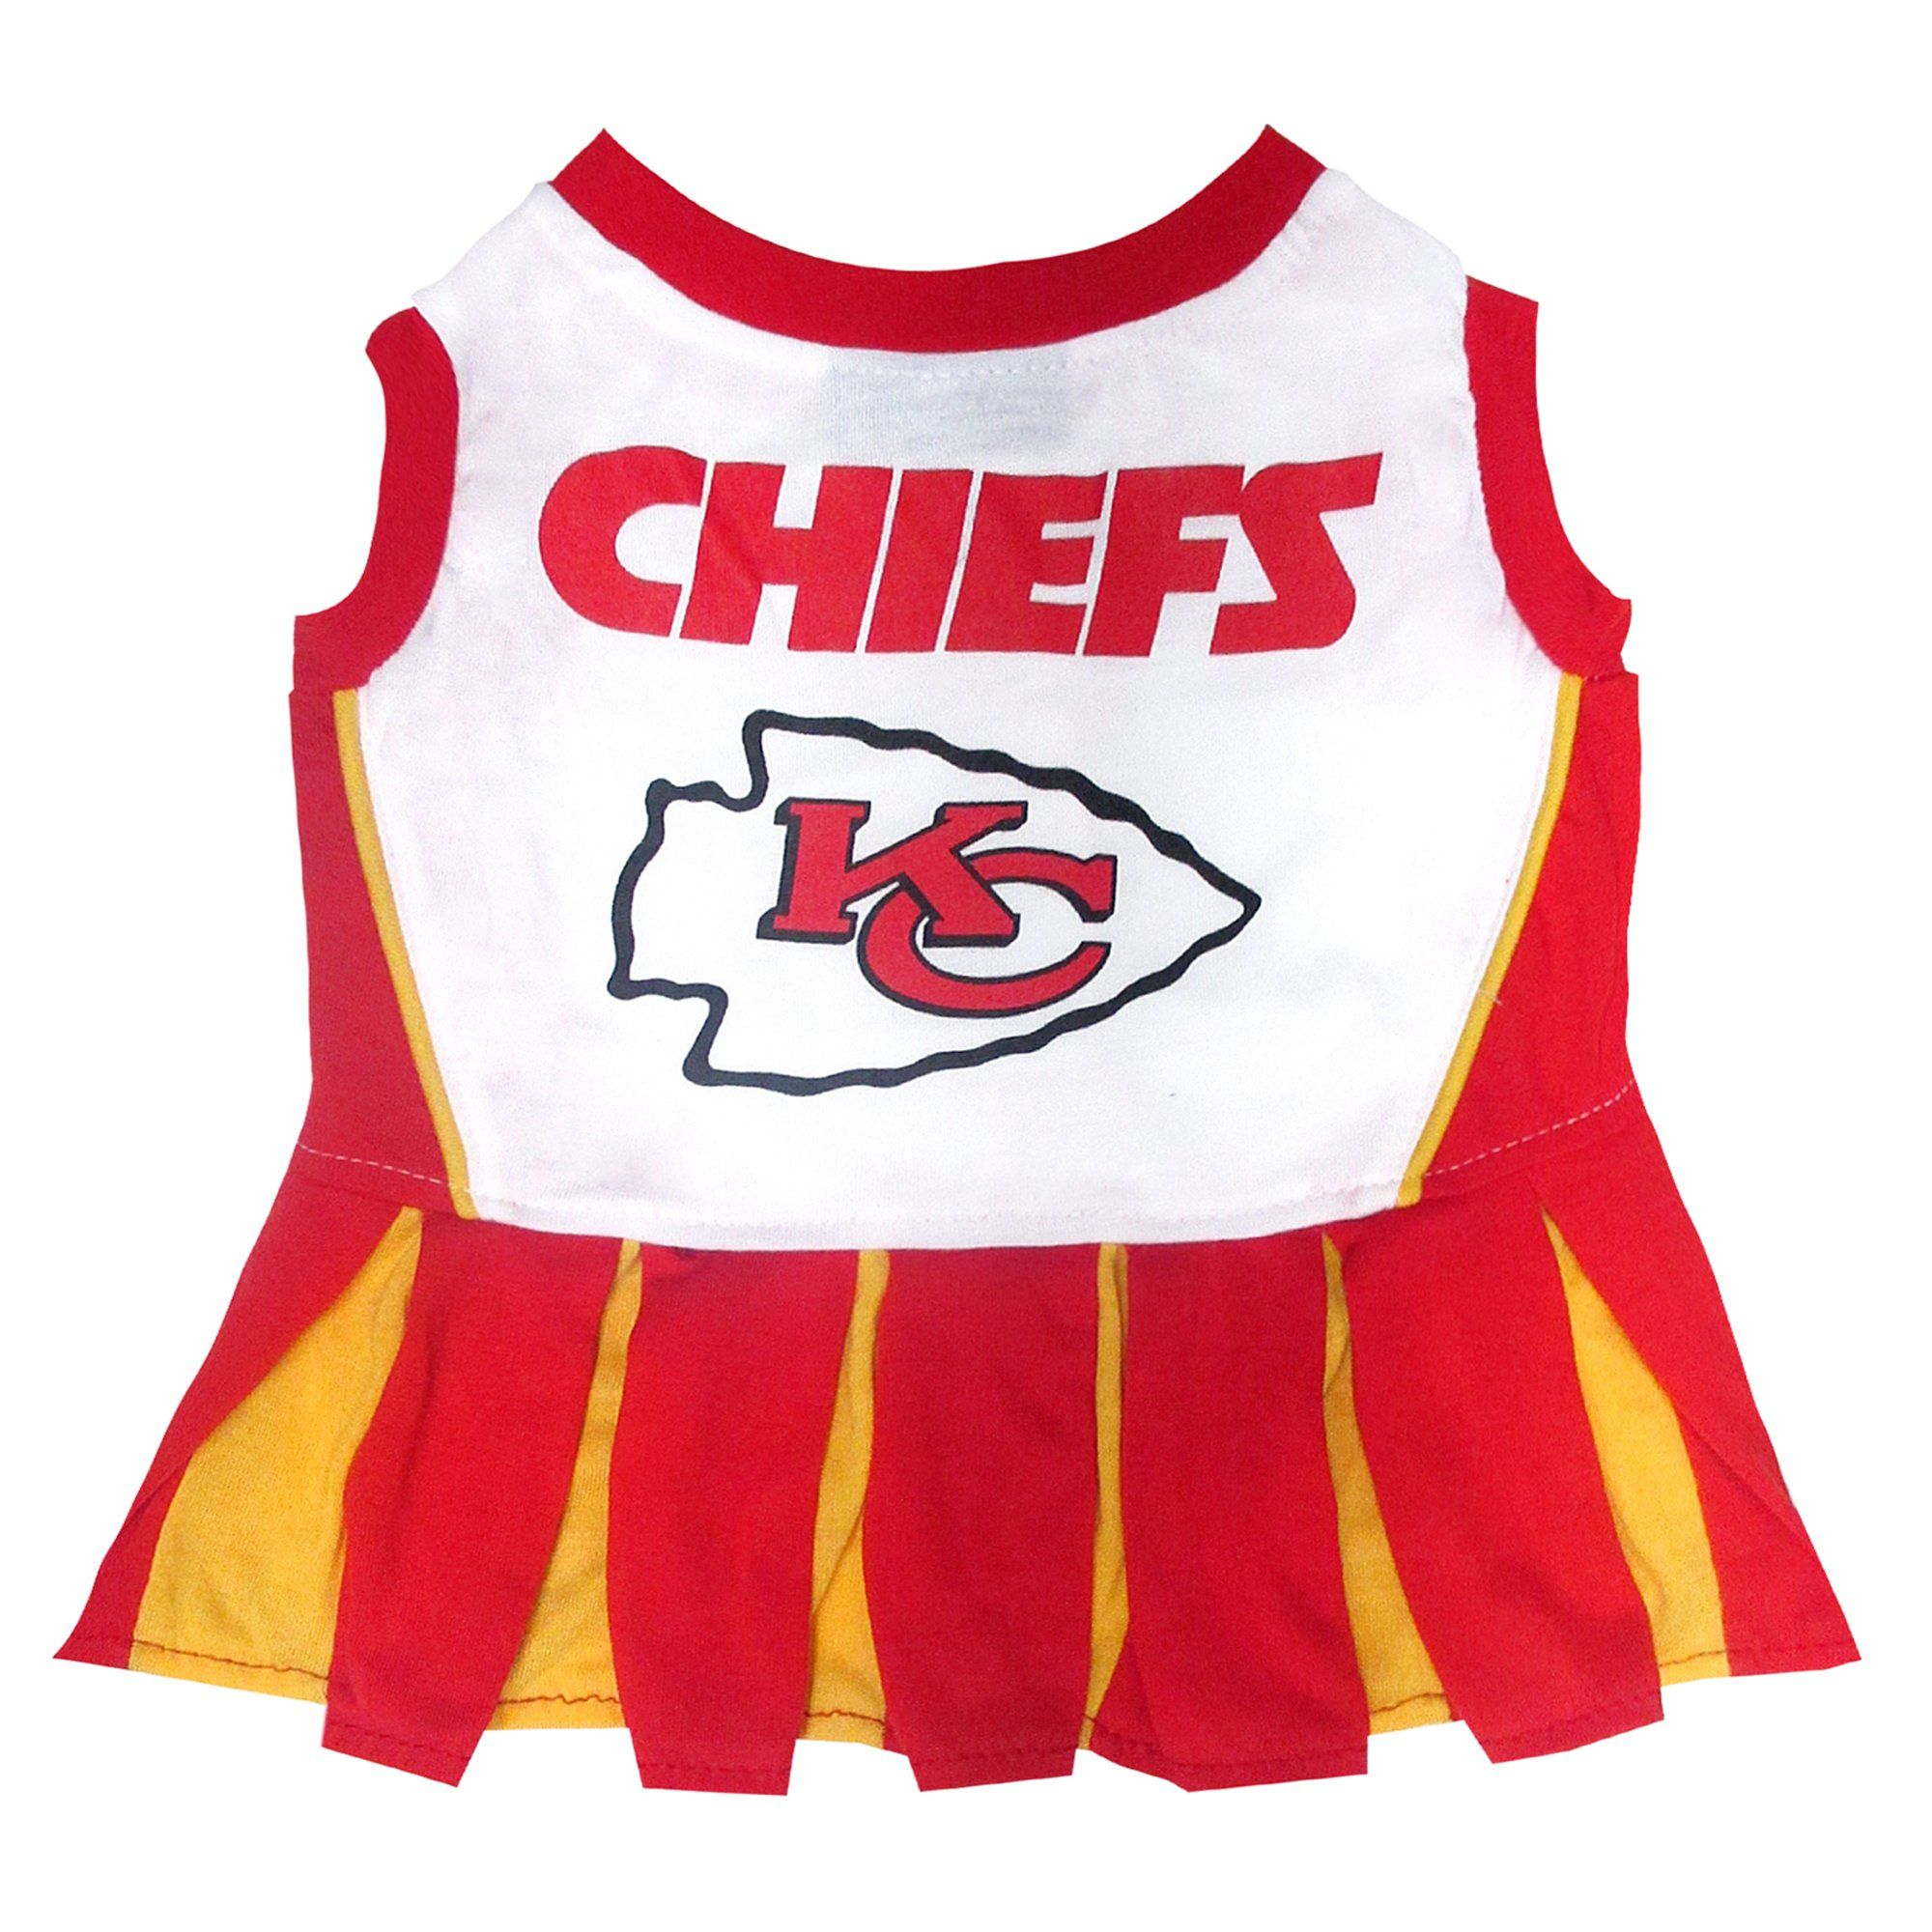 8424a820 Pets First Kansas City Chiefs NFL Cheerleader Outfit, X-Small, Red ...